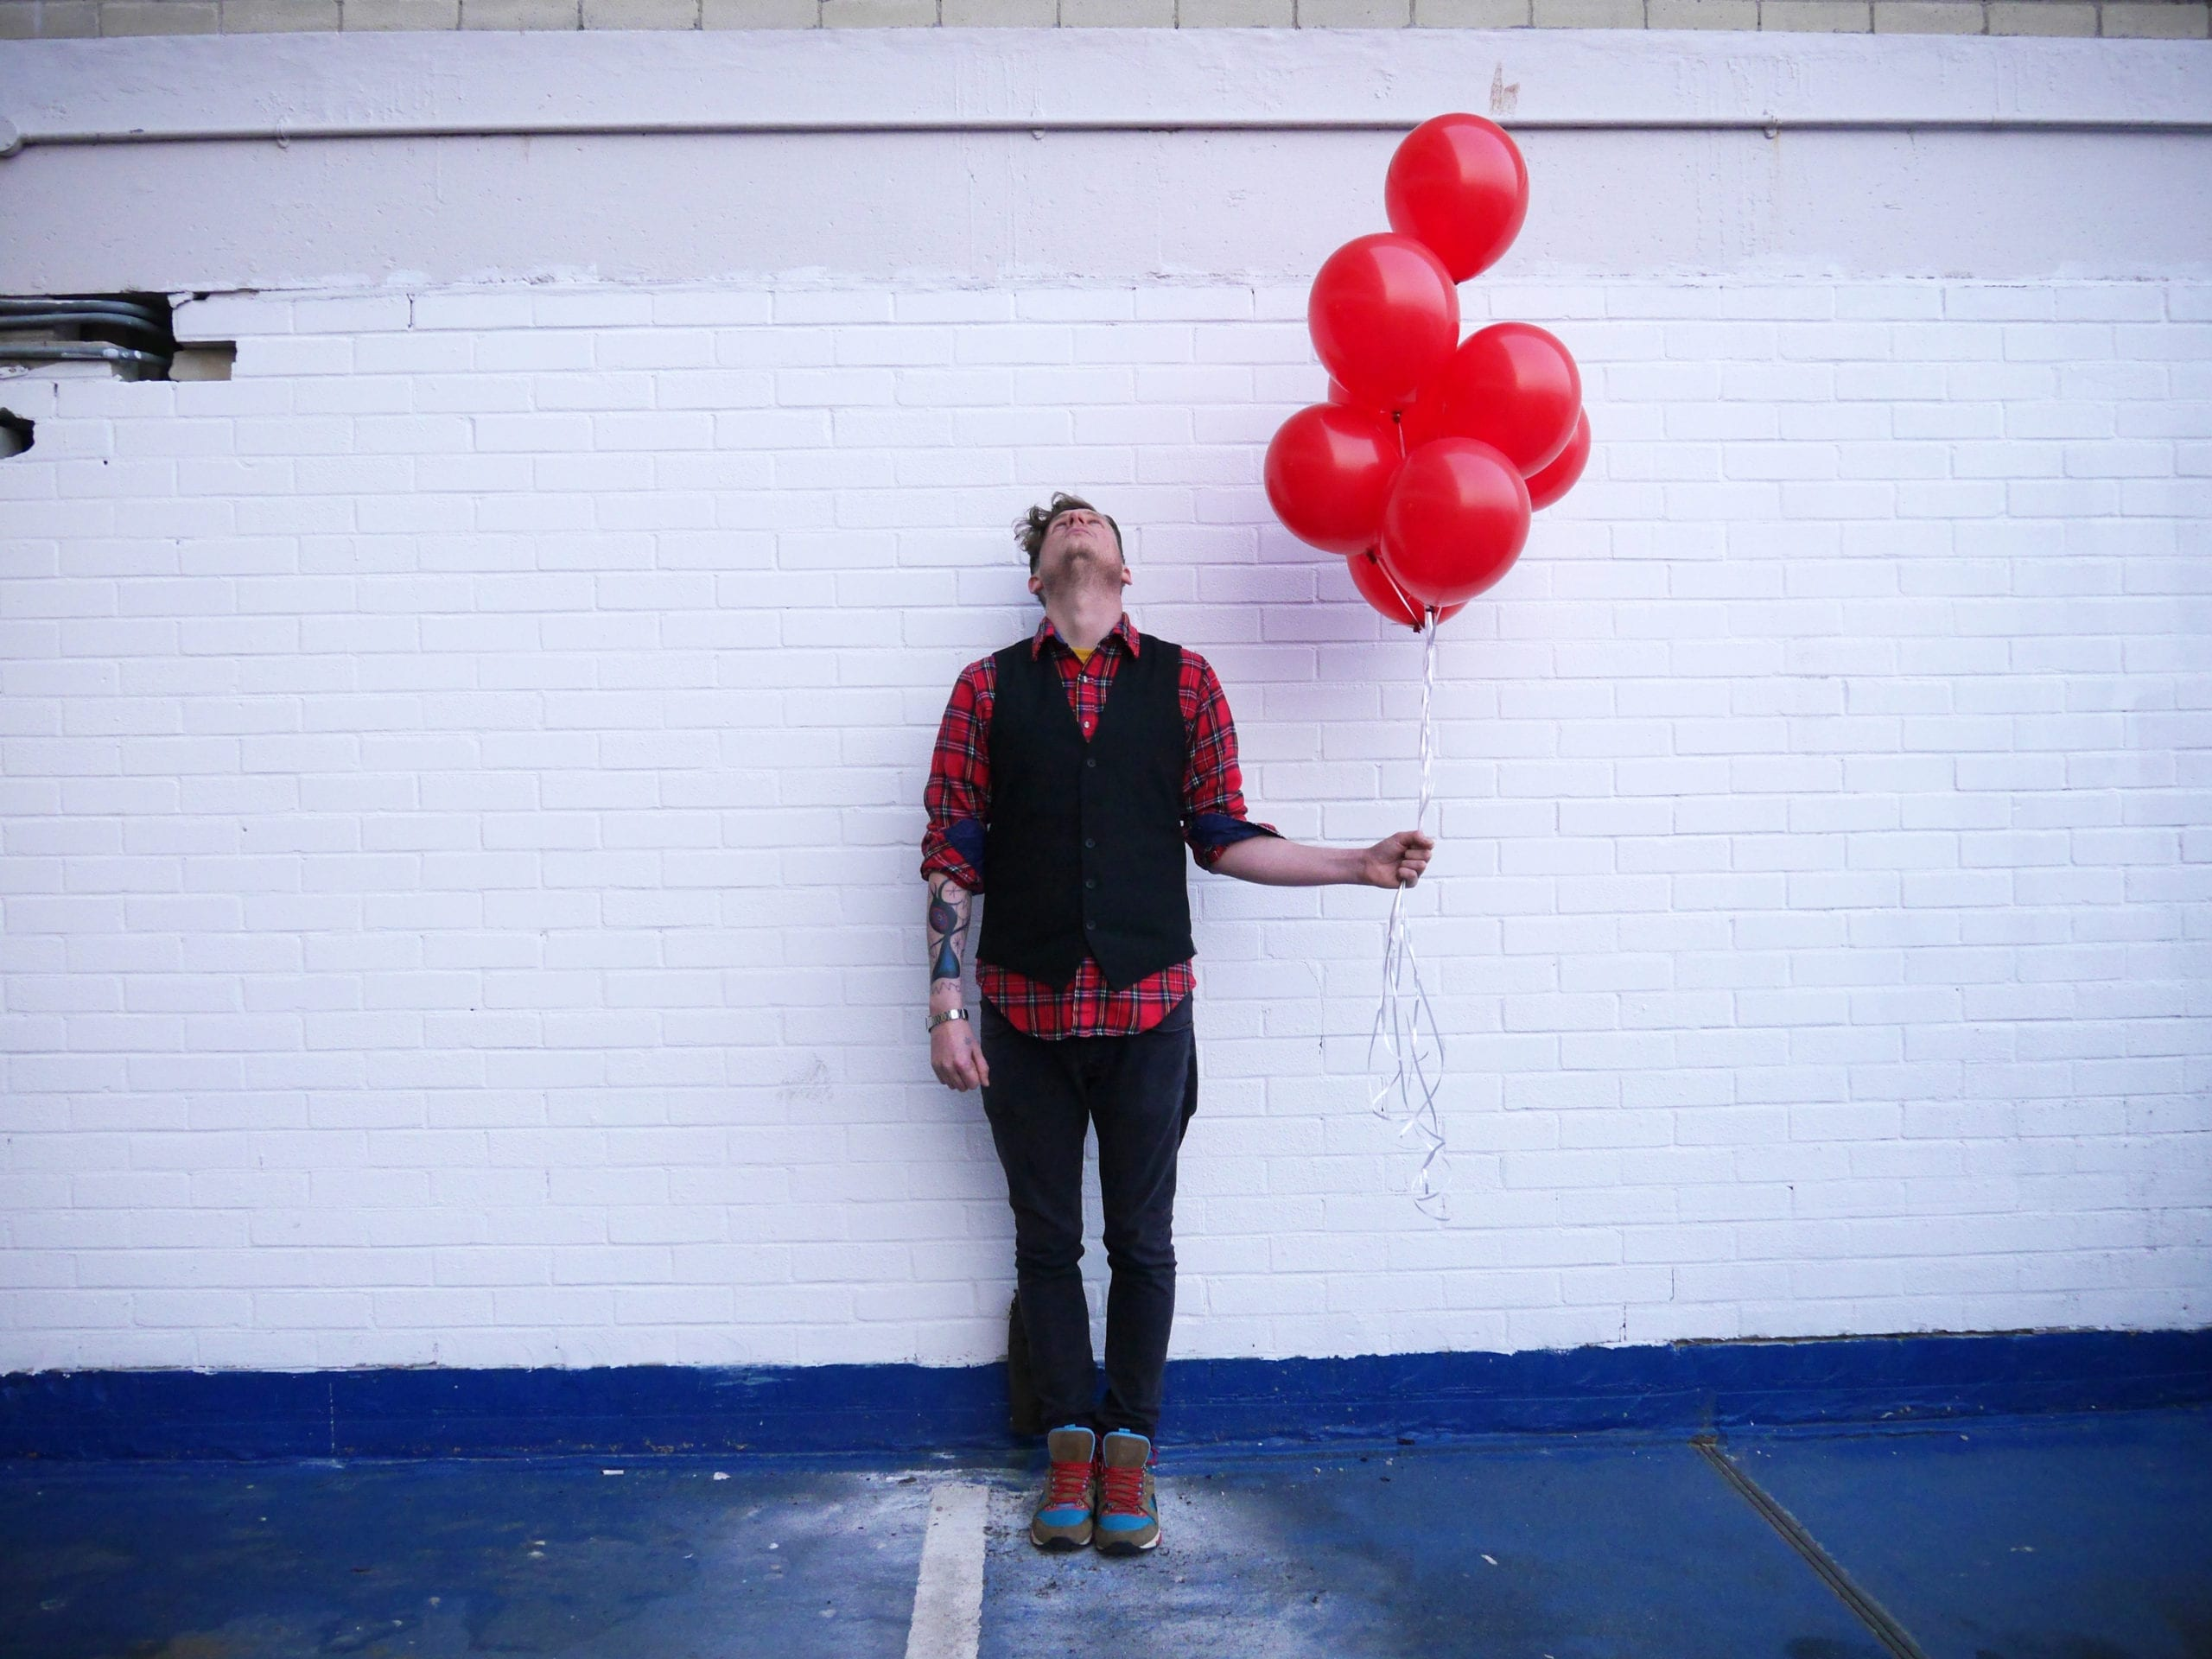 A man holding a bunch of red balloons in front of a white wall